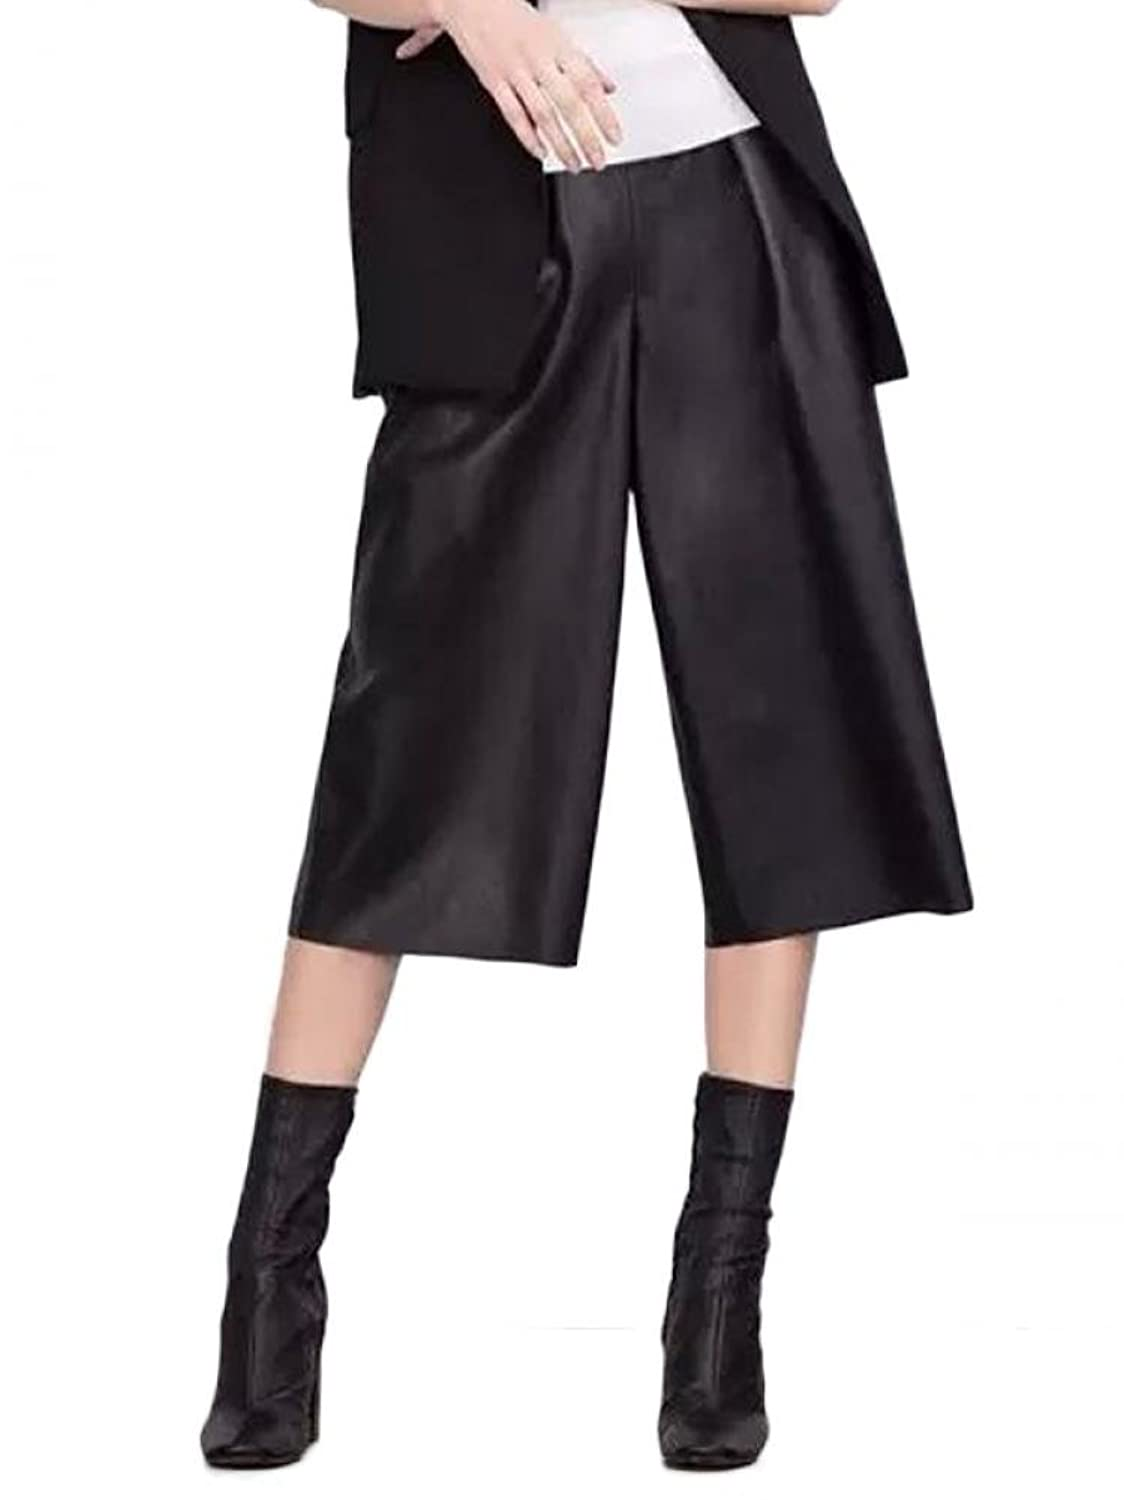 Lingswallow Women's Casual Faux Leather High Waist Wide Leg Palazzo Pants